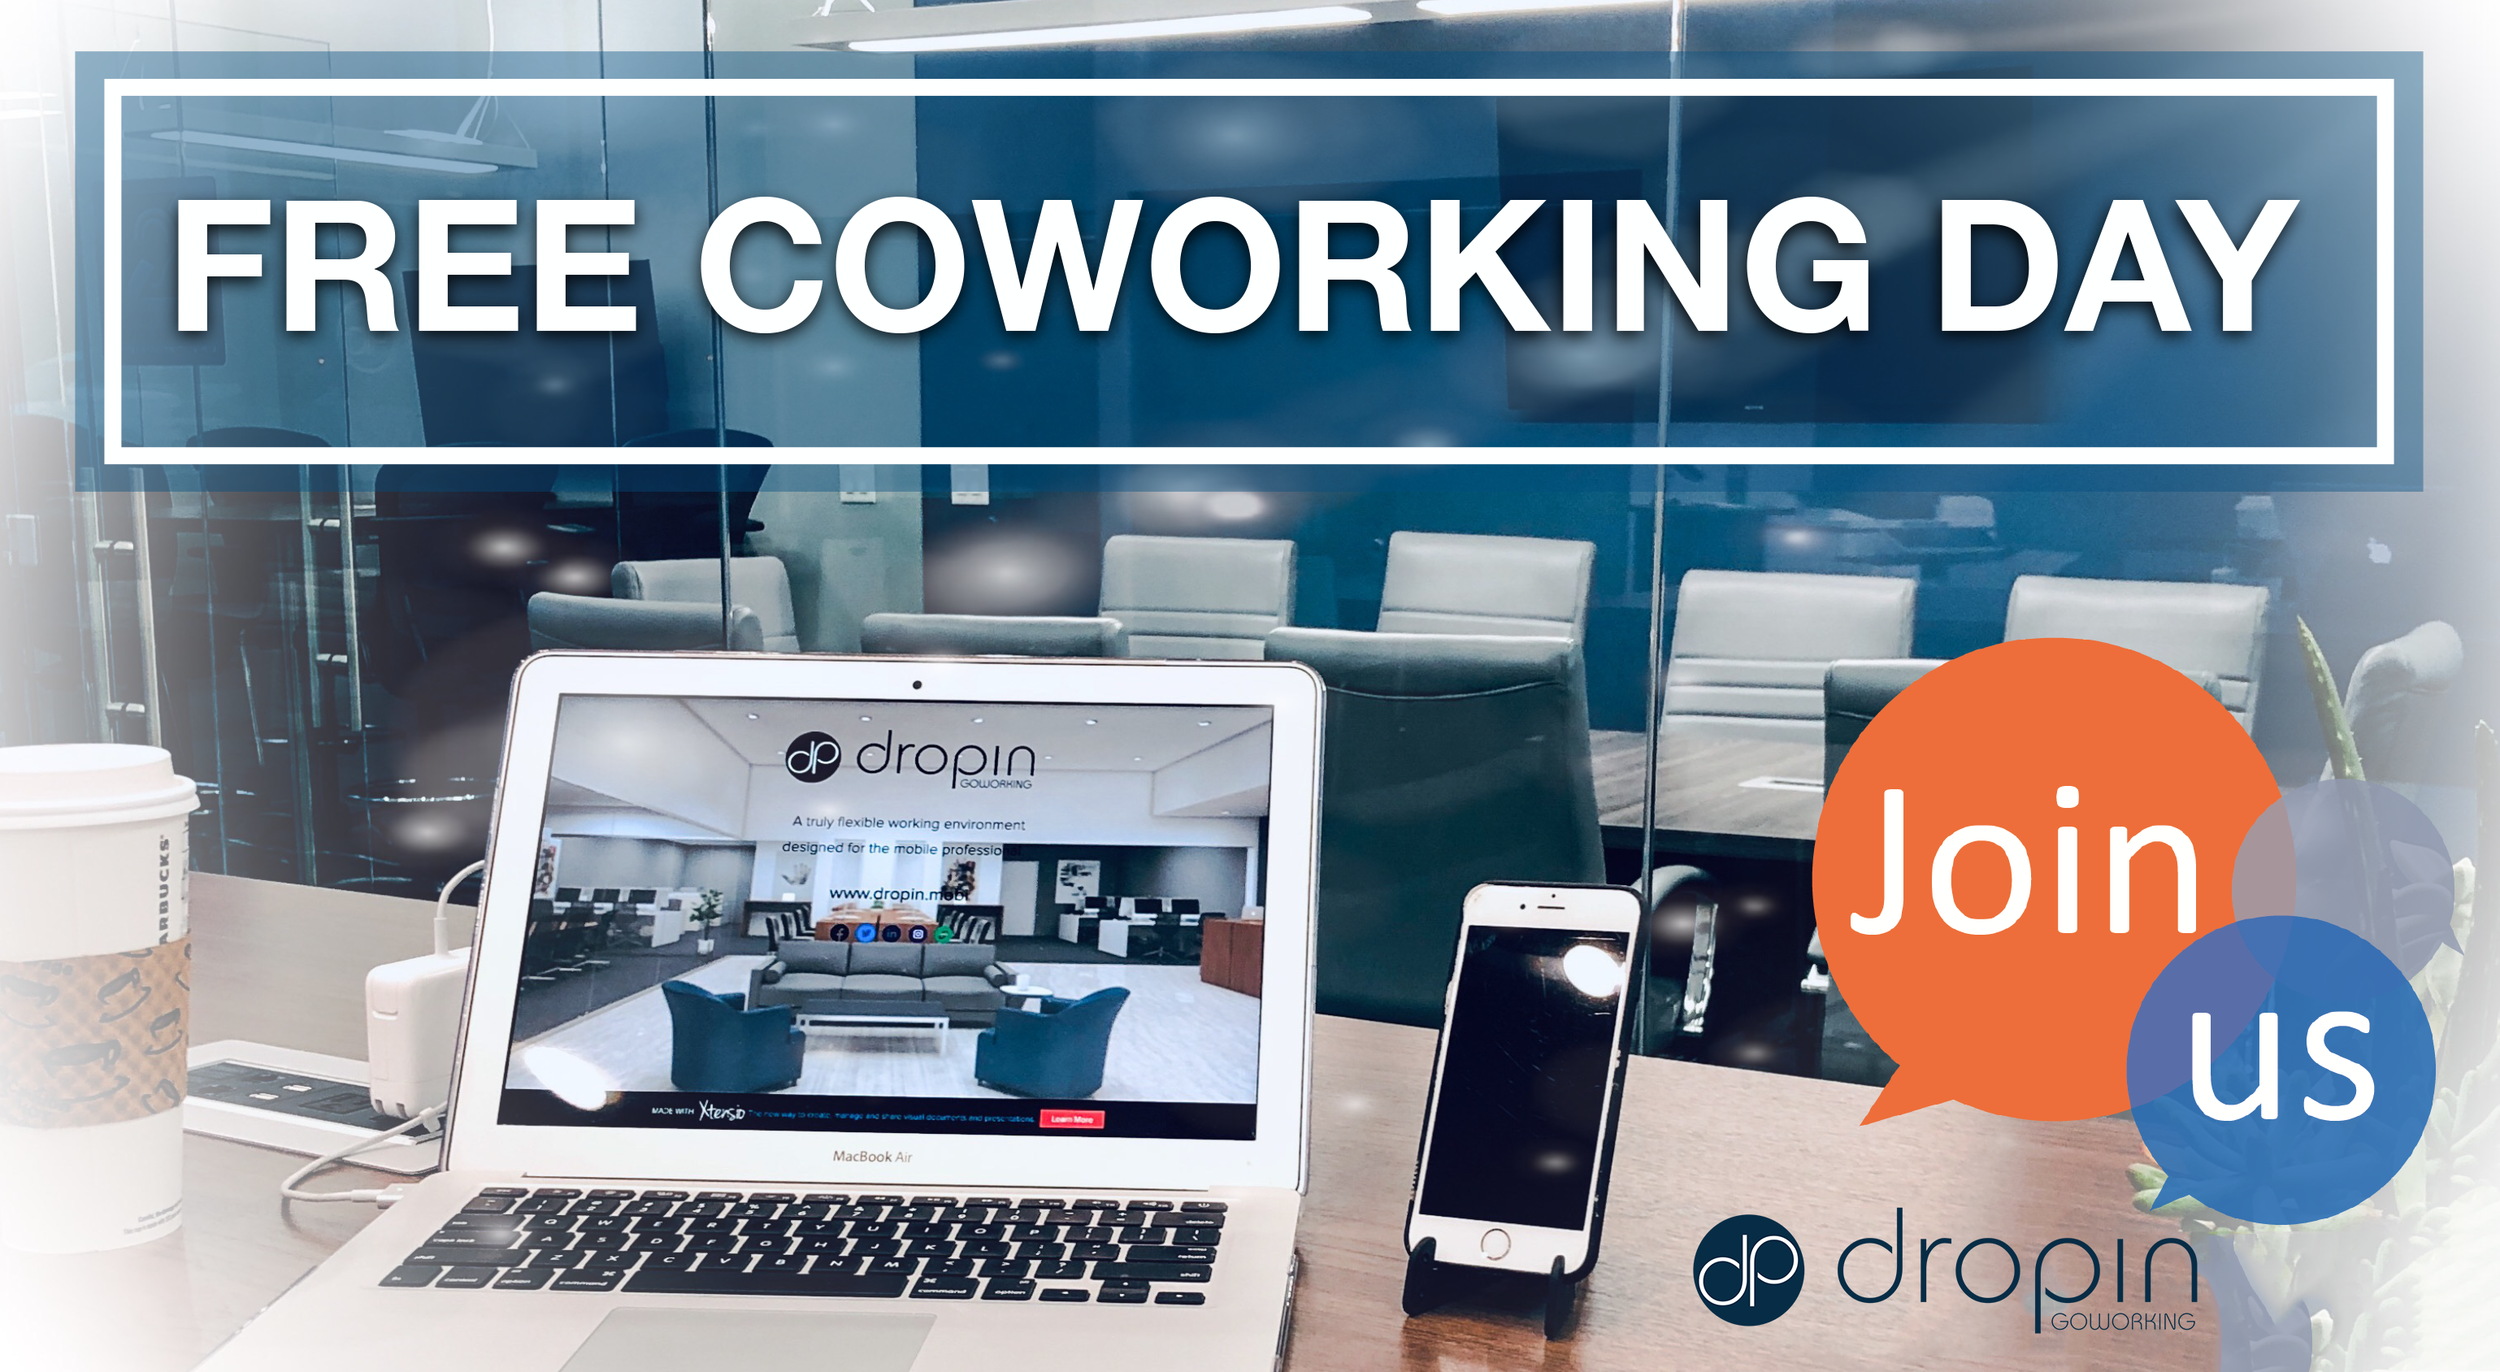 Friday, September 6 7am-10pm - Have you ever wondered what it is like to work at dropin, a professional coworking/goworking shared office space? Or are you curious what a difference super fast secure 250 Mbps Wi-Fi fiber internet makes when using cloud-based applications or uploading or downloading important files you need for work?